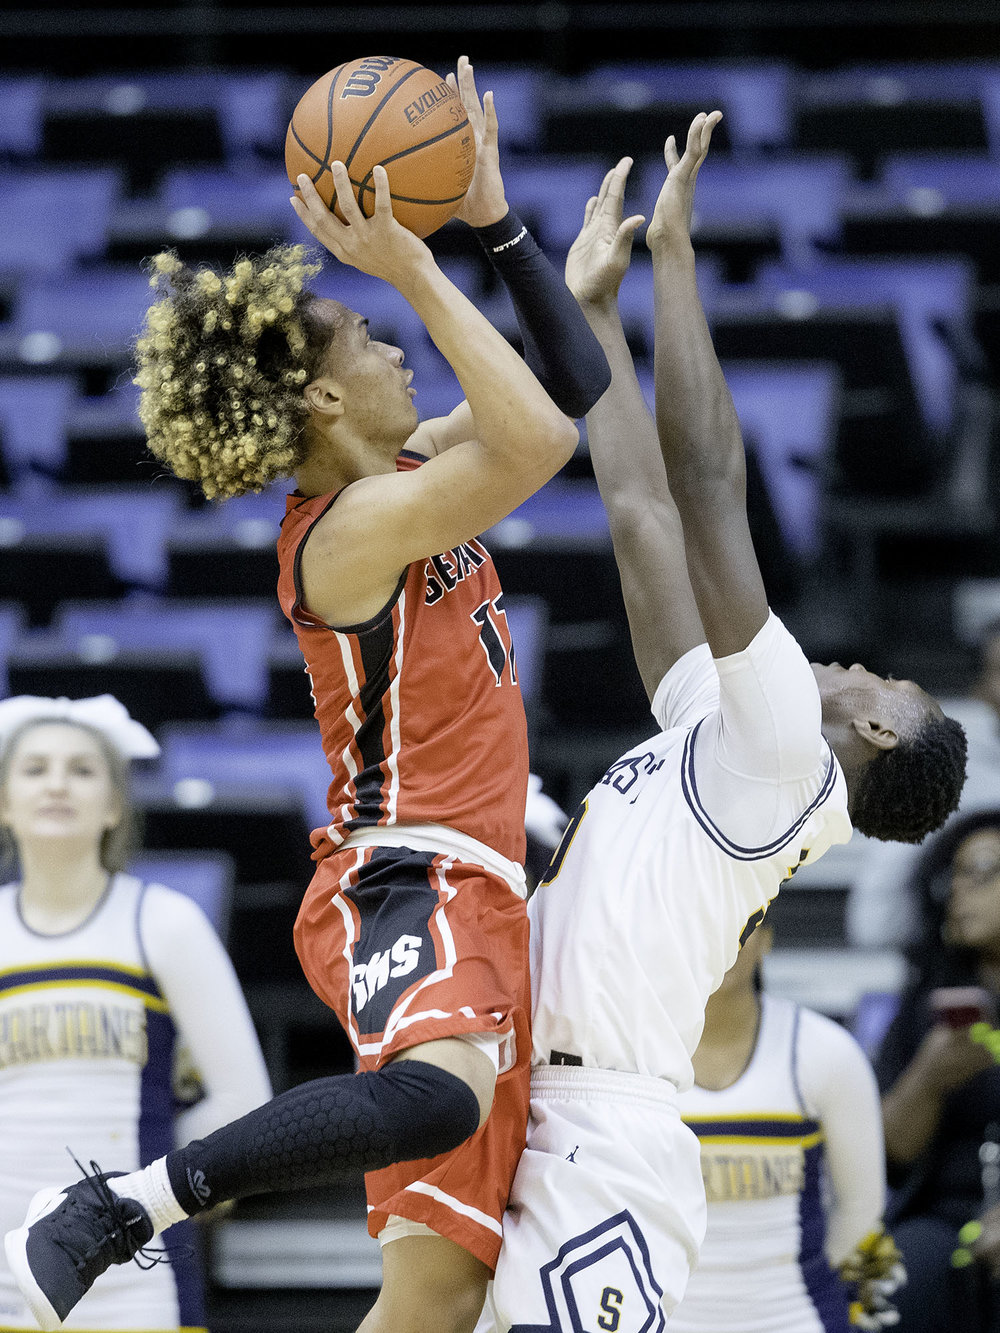 Springfield's Zaire Harris puts up a shot under pressure from a Southeast defender during the Boys City Tournament at the Bank of Springfield Center Thursday, Jan. 17, 2019.  [Ted Schurter/The State Journal-Register]